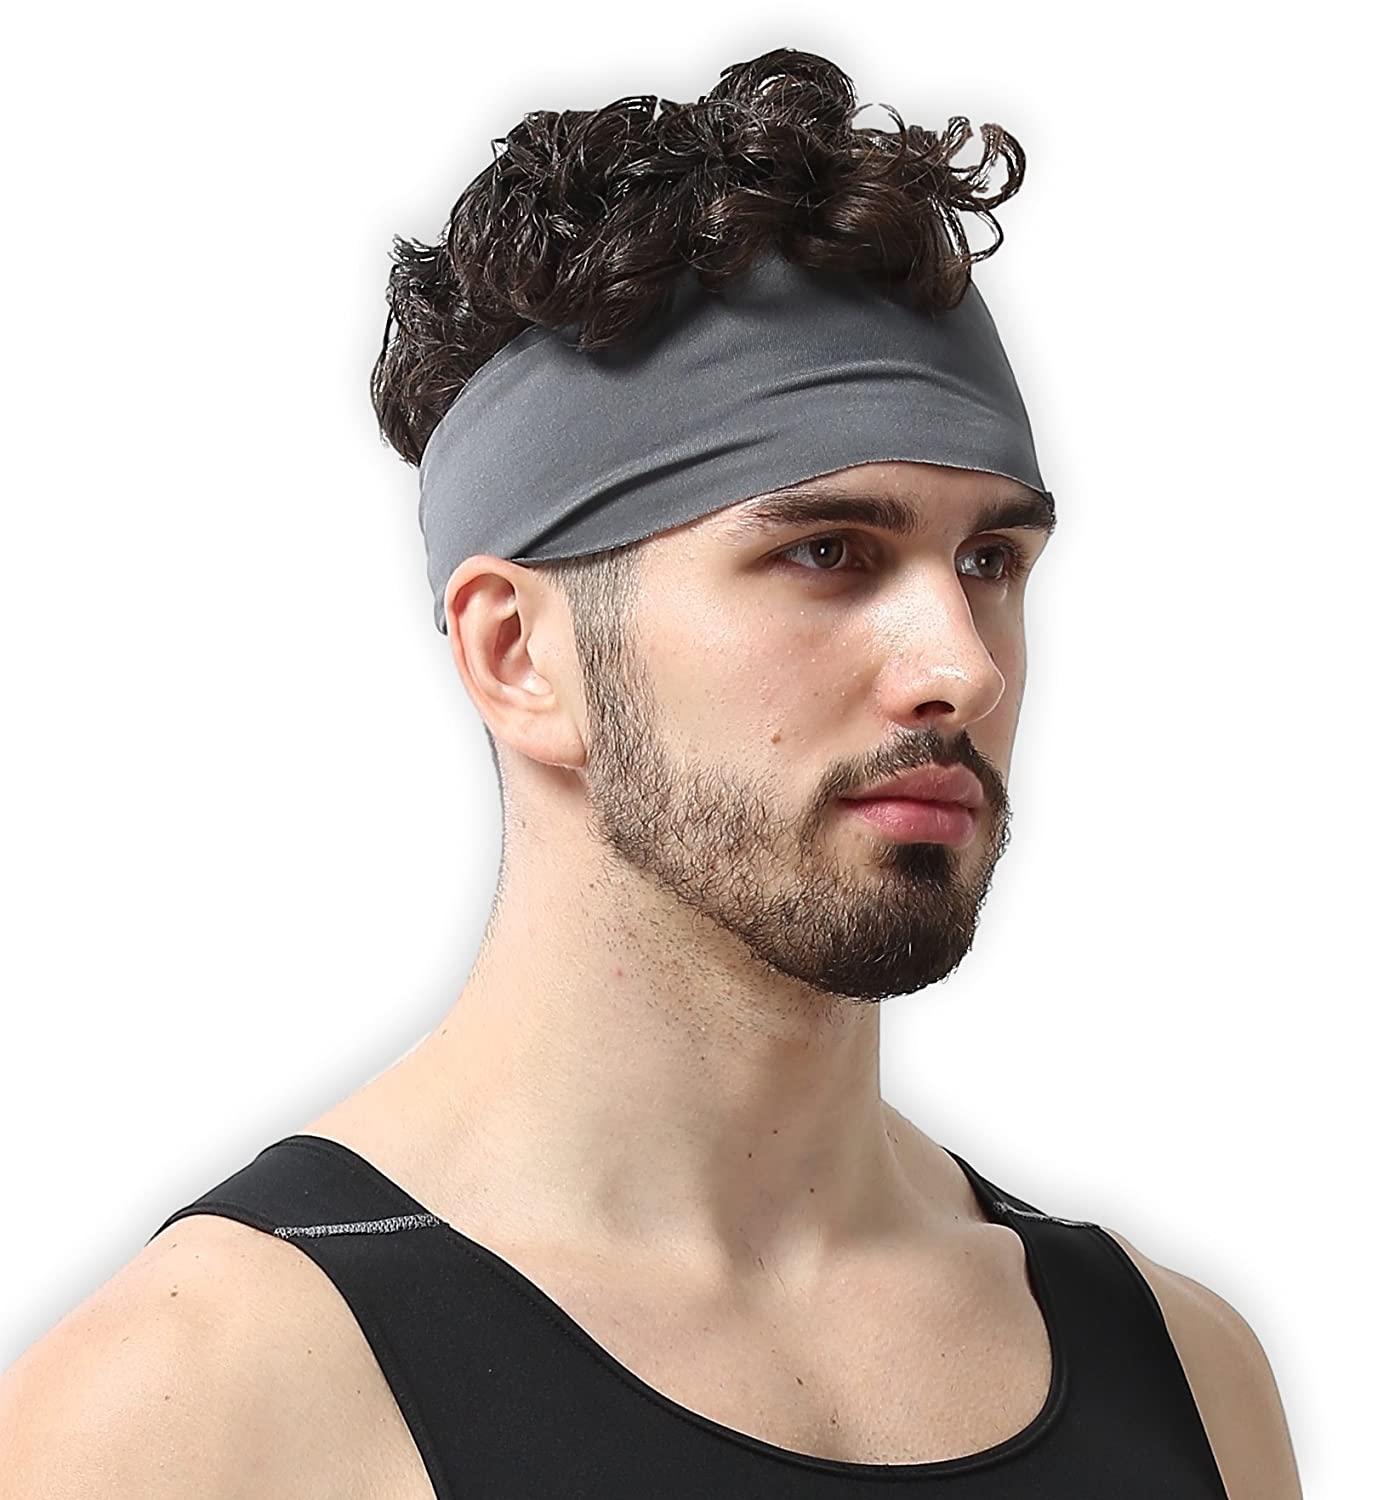 Mens Headband   Guys Sweatband & Sports Headband For Running, Crossfit, Working Out And Dominating Your Competition   Ultimate Performance Stretch & Moisture Wicking by Tough Headwear